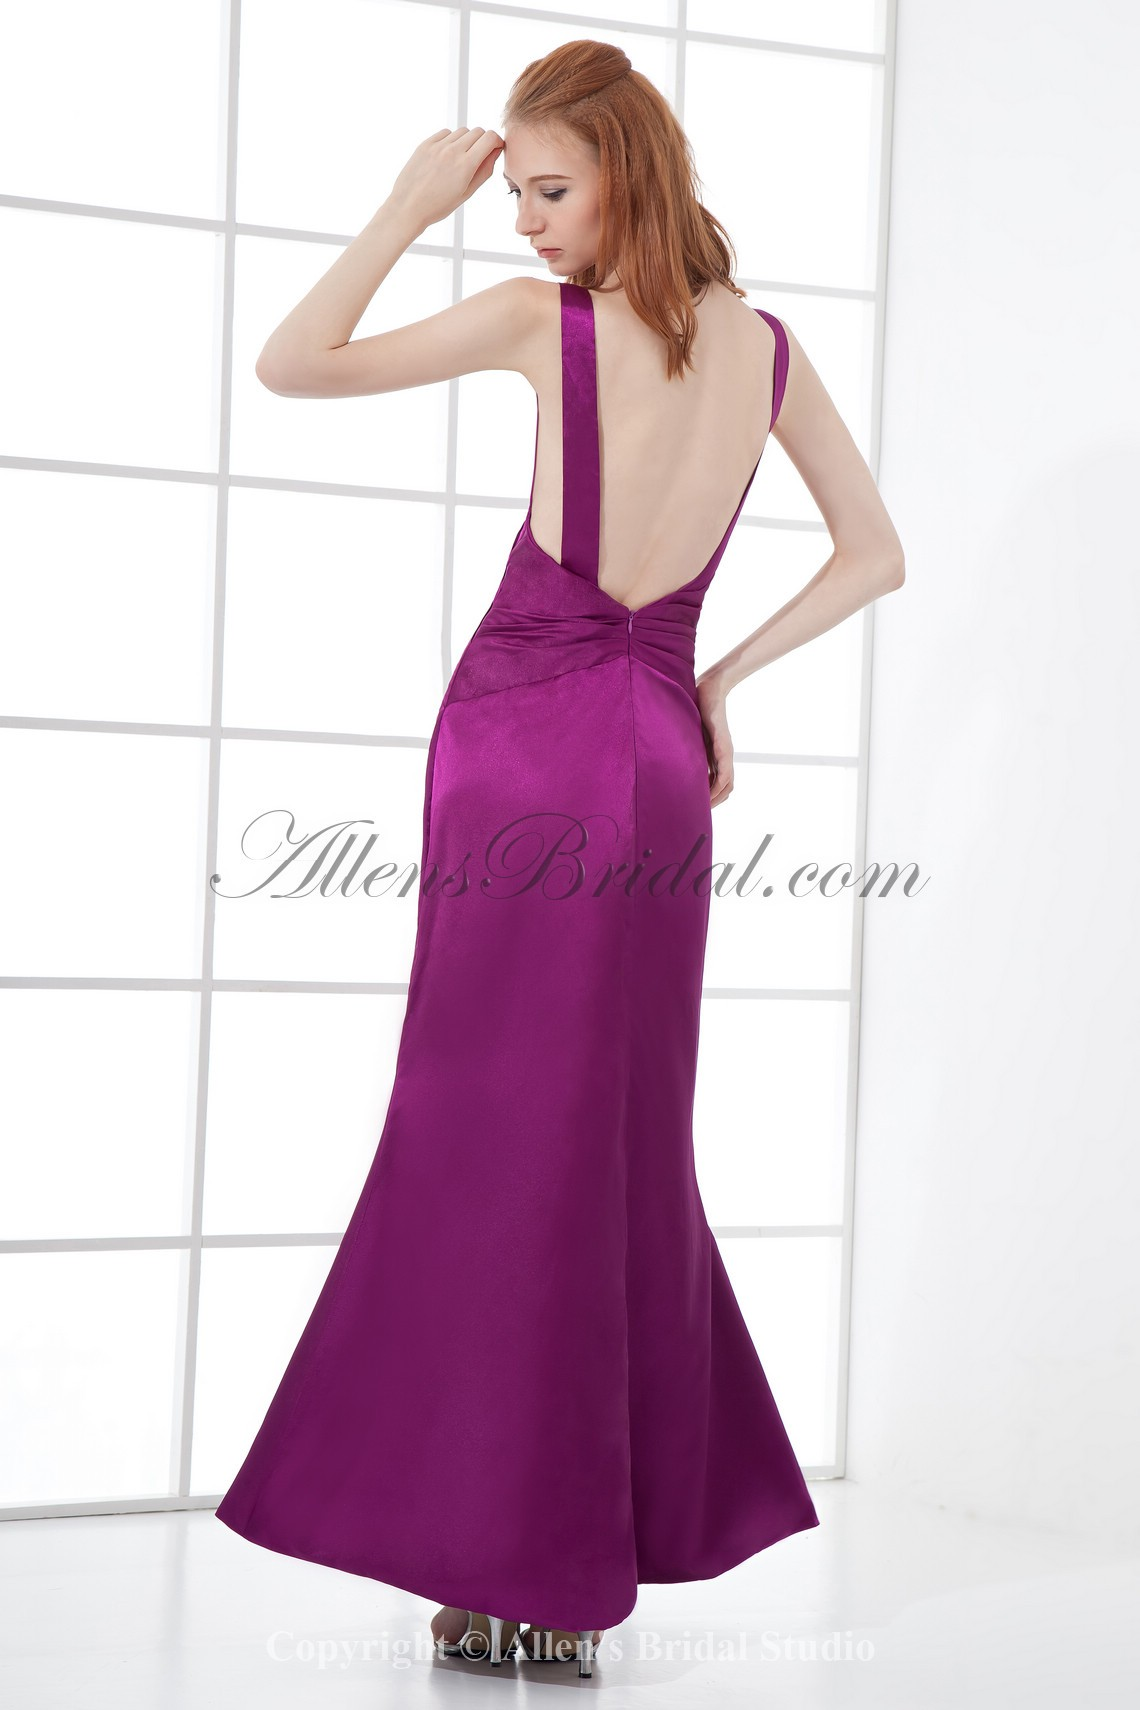 /68-544/satin-straps-sheath-ankle-length-sequins-prom-dress.jpg